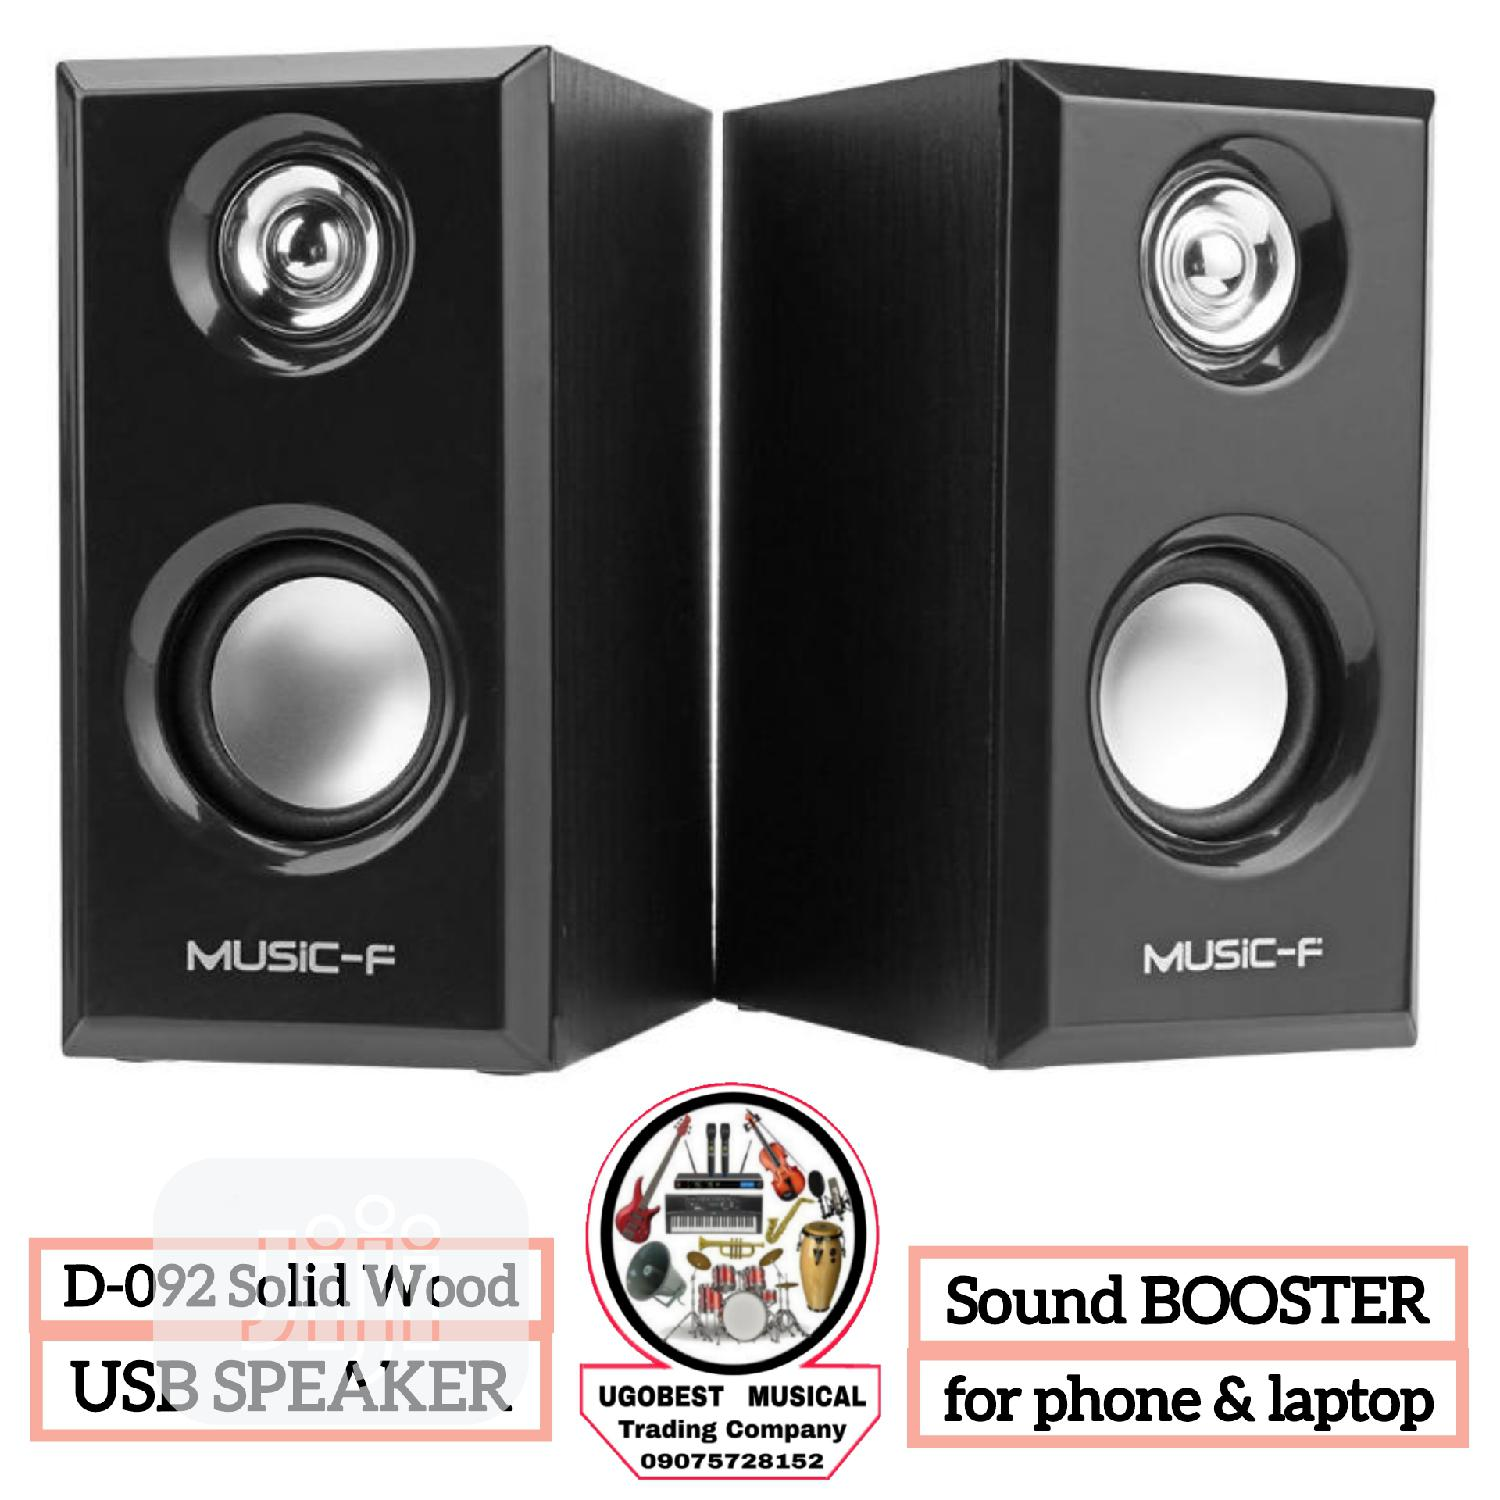 High Quality USB Speaker for PC, LAPTOP, PHONE